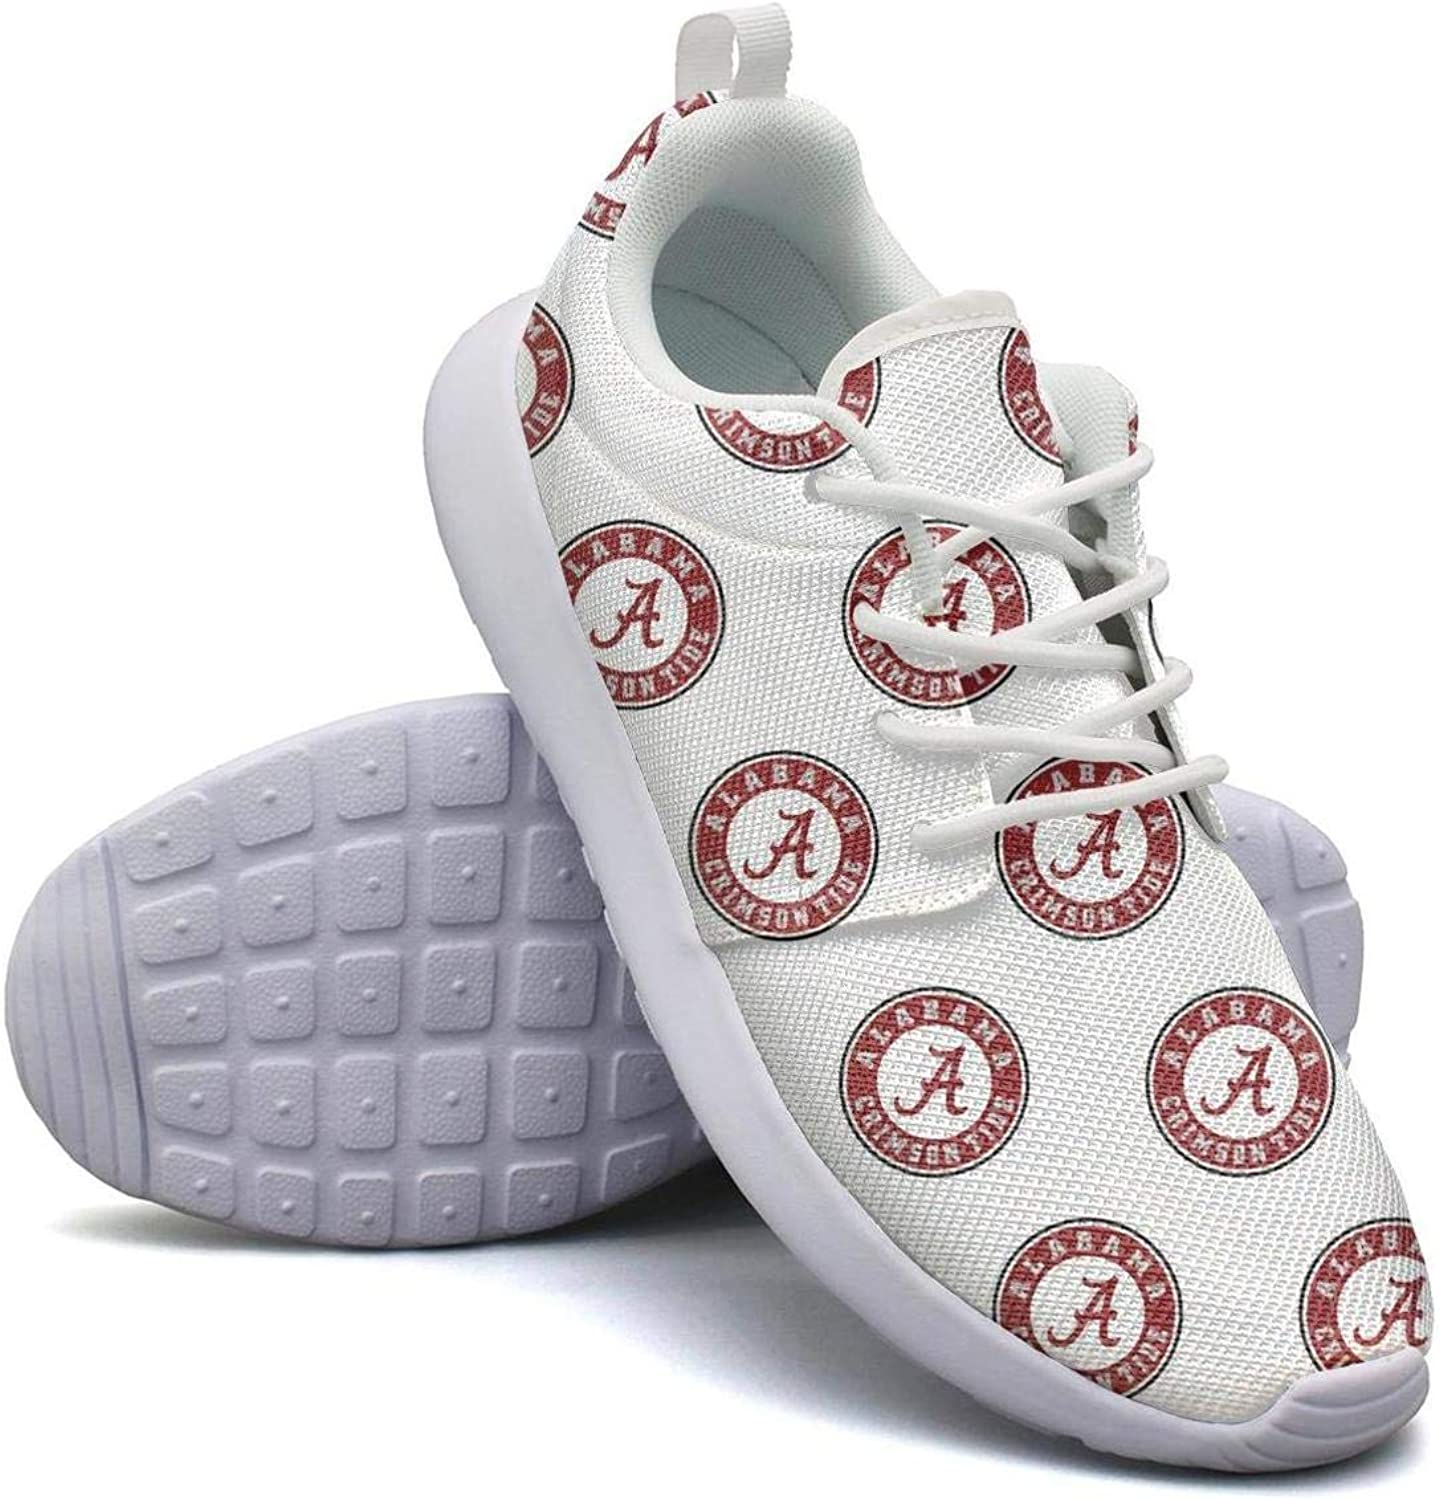 NC Ball shoes Athletic Crazy University Mens Adult Sneaker